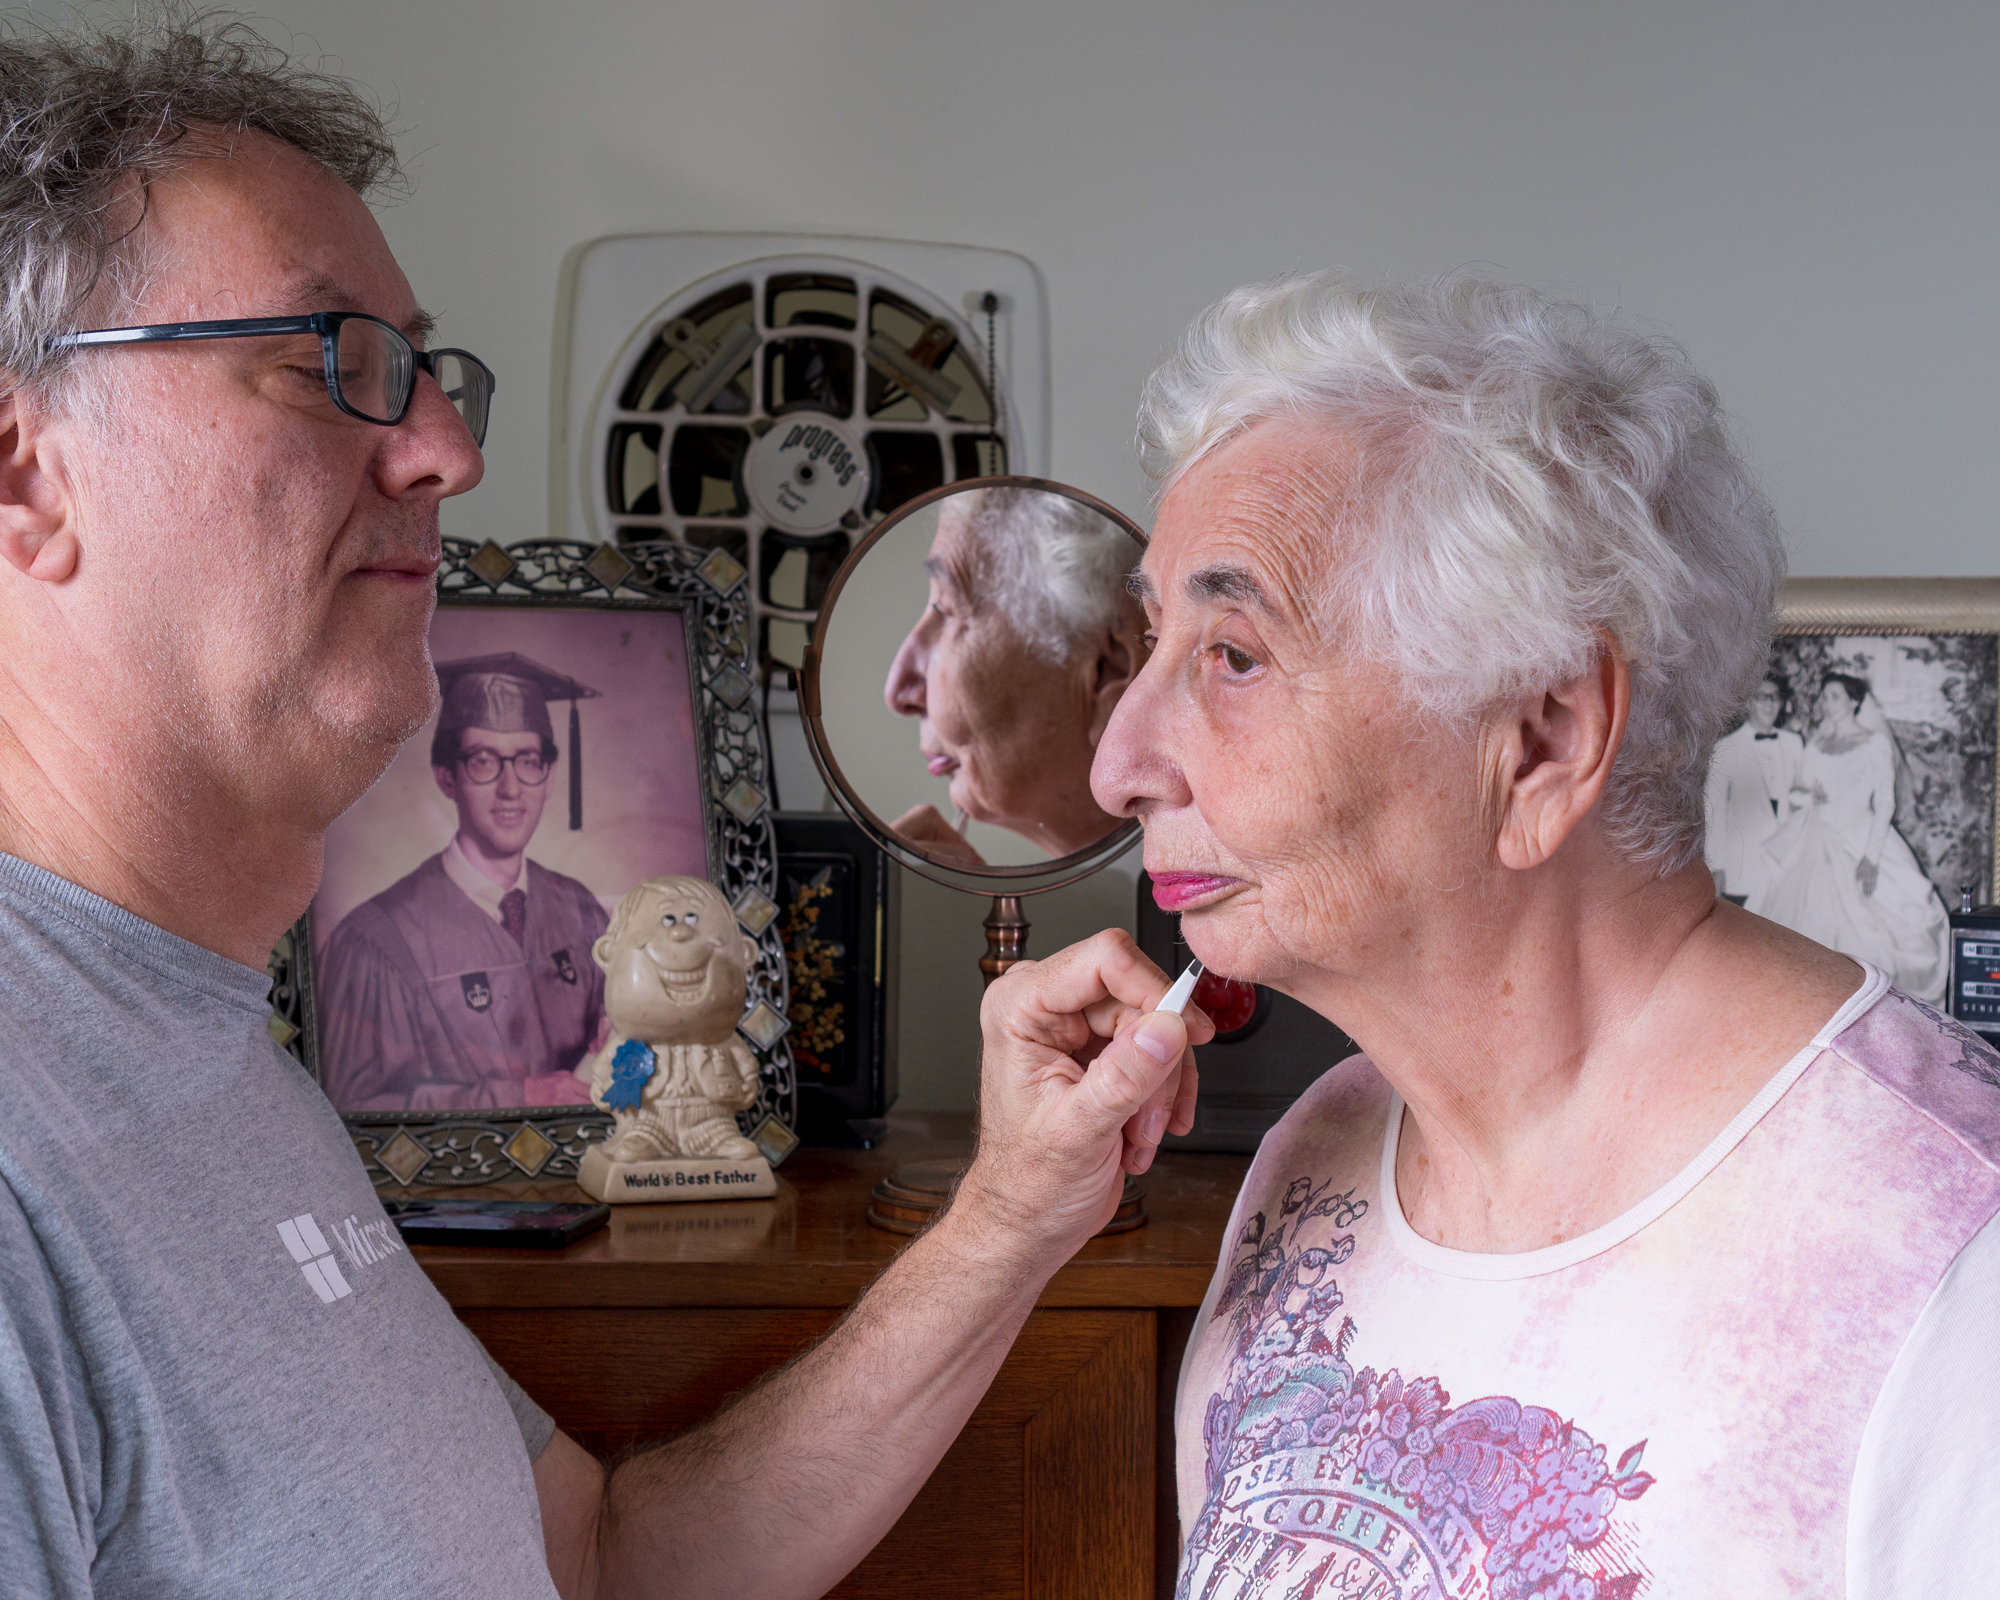 An adult man assists his elderly mother with her beauty routine in her home. An old portrait of a man in a graduation cap, a black and white wedding portrait, and a mirror sit on a dresser behind them.